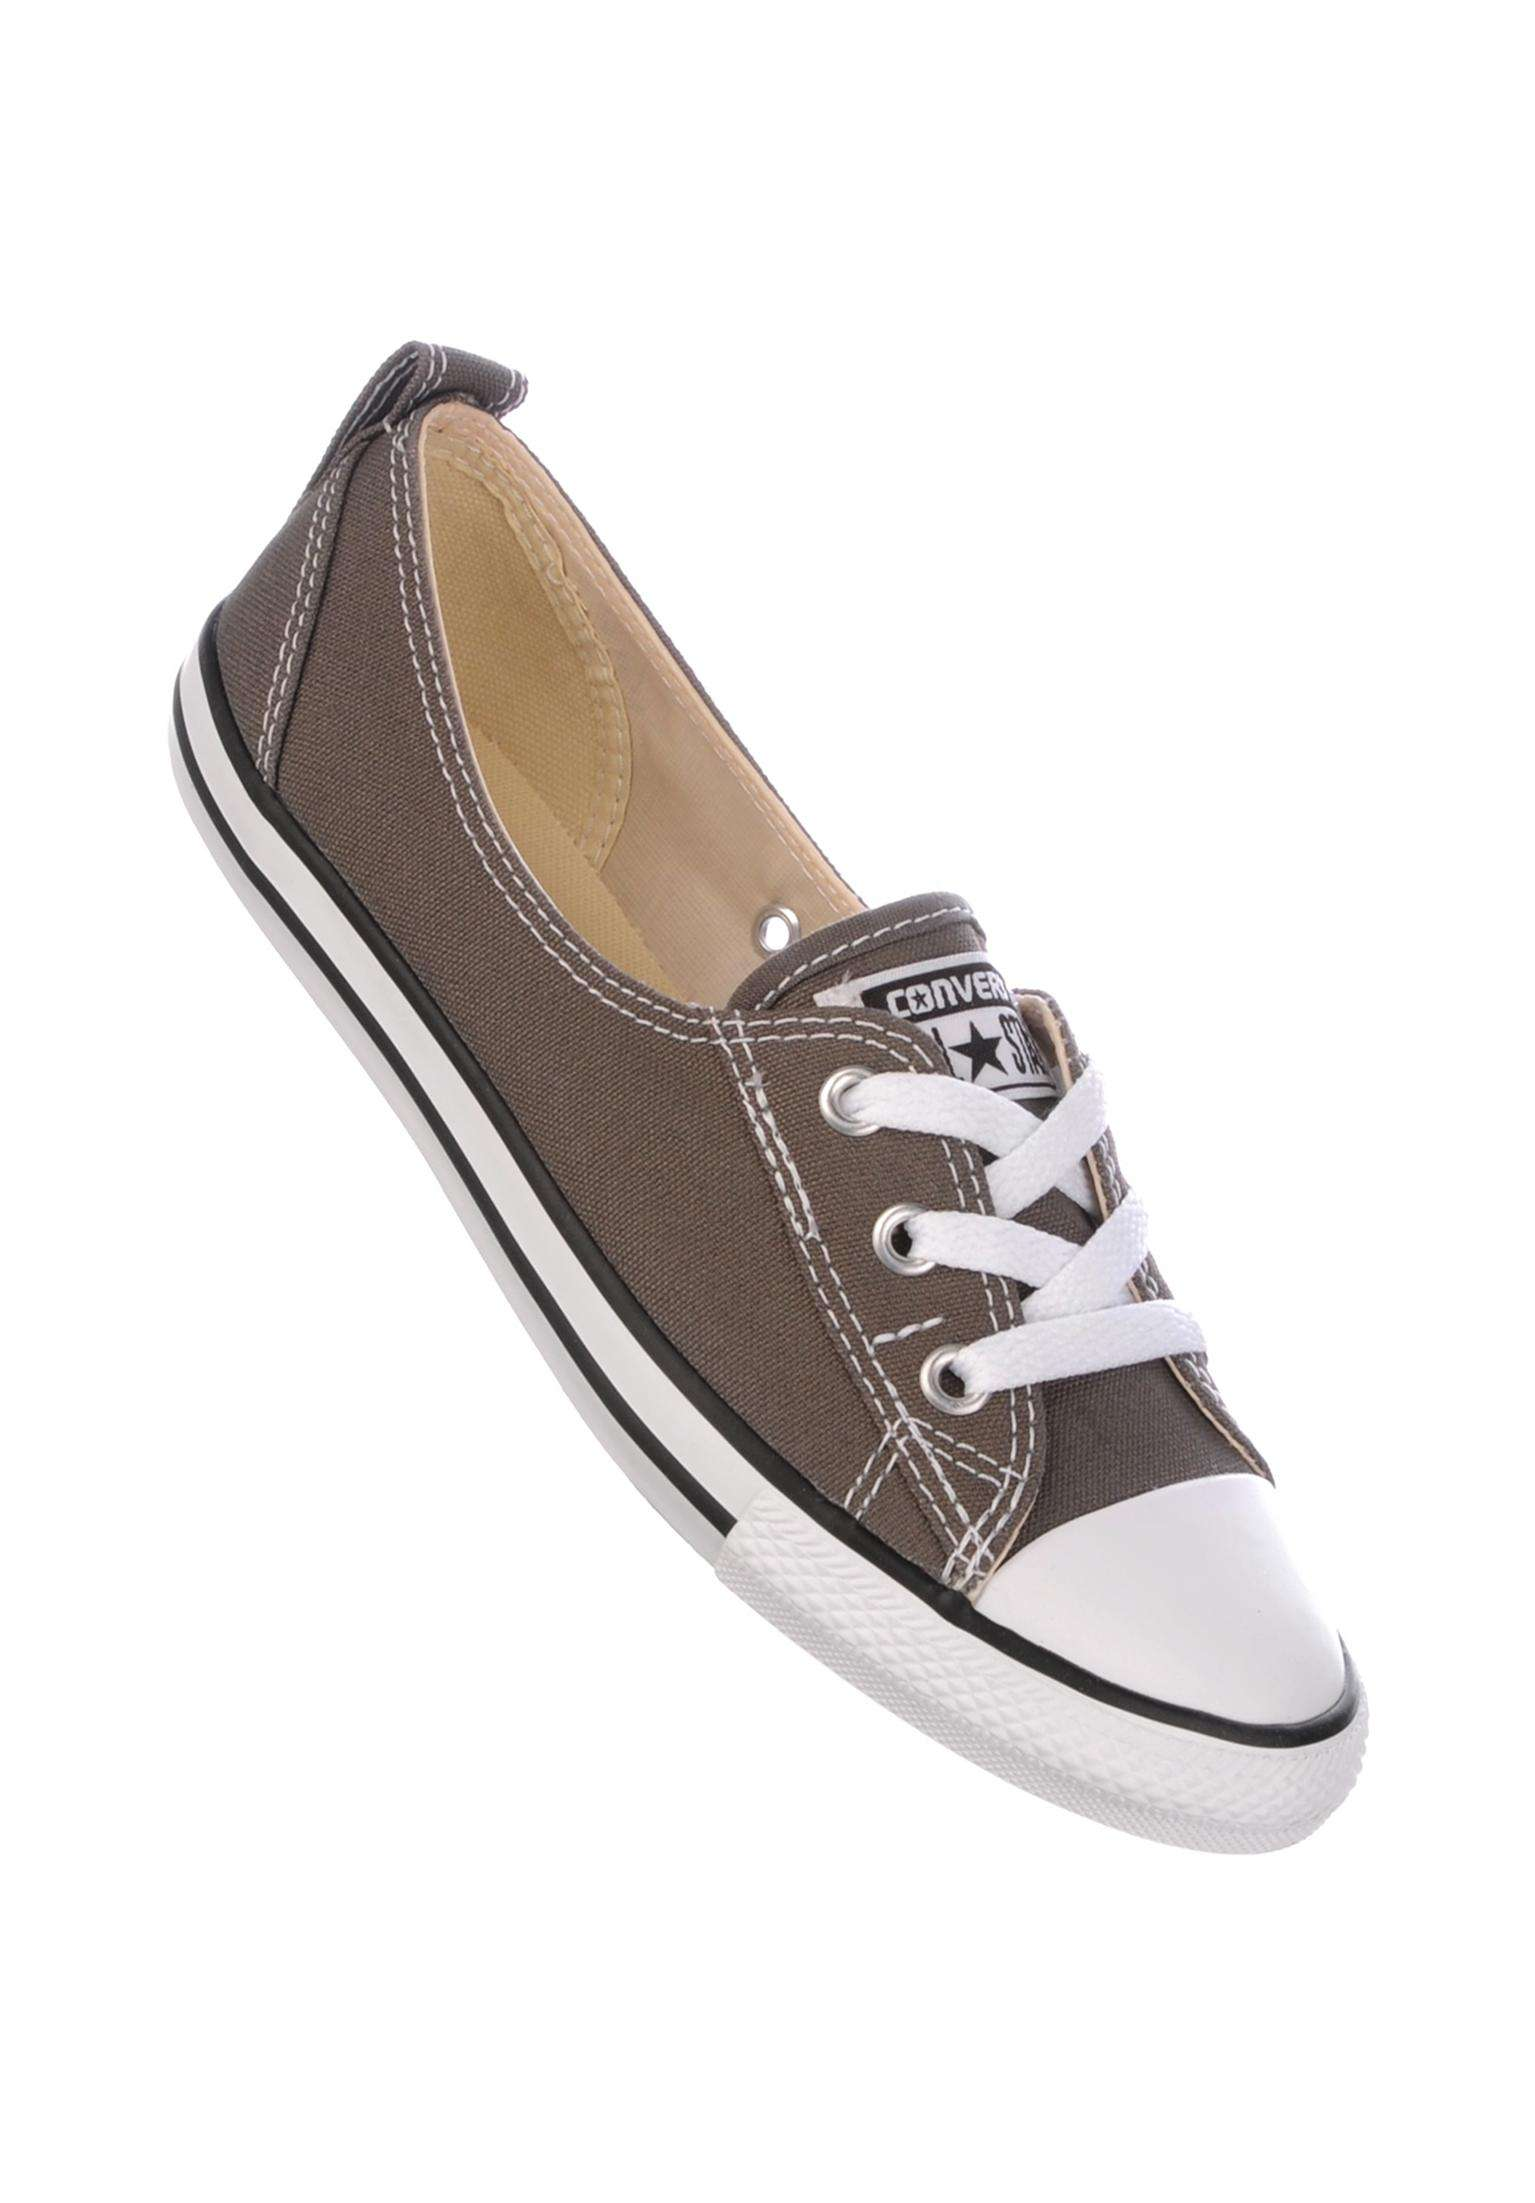 Ballet Lace Converse All Shoes in charcoal for Women  5a73d1934